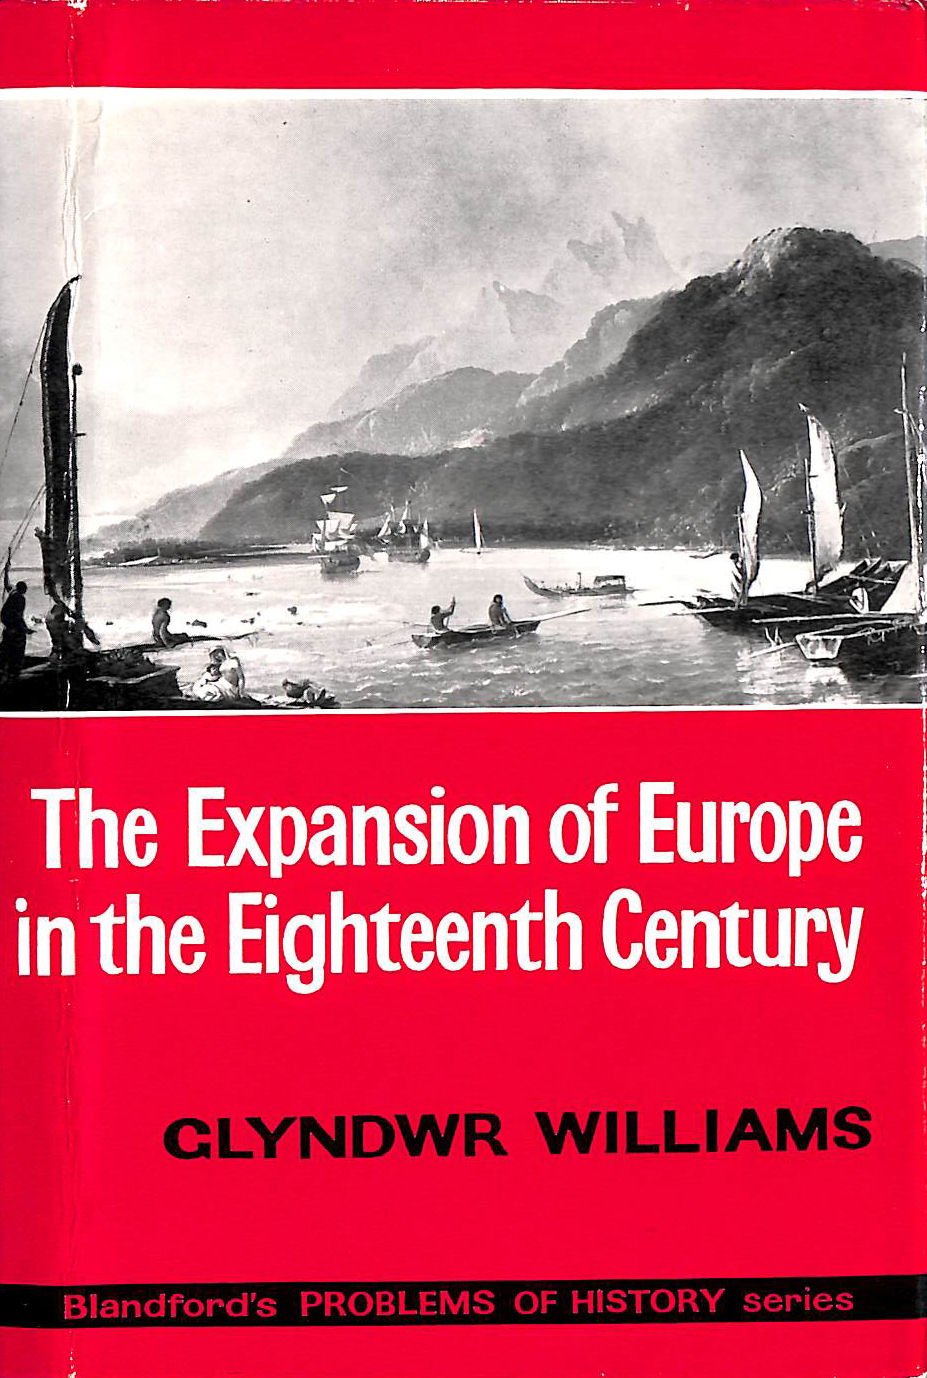 Image for The Expansion Of Europe In The Eighteenth Century: Overseas Rivalry, Discovery And Exploitation (History Series, Problems Of History)